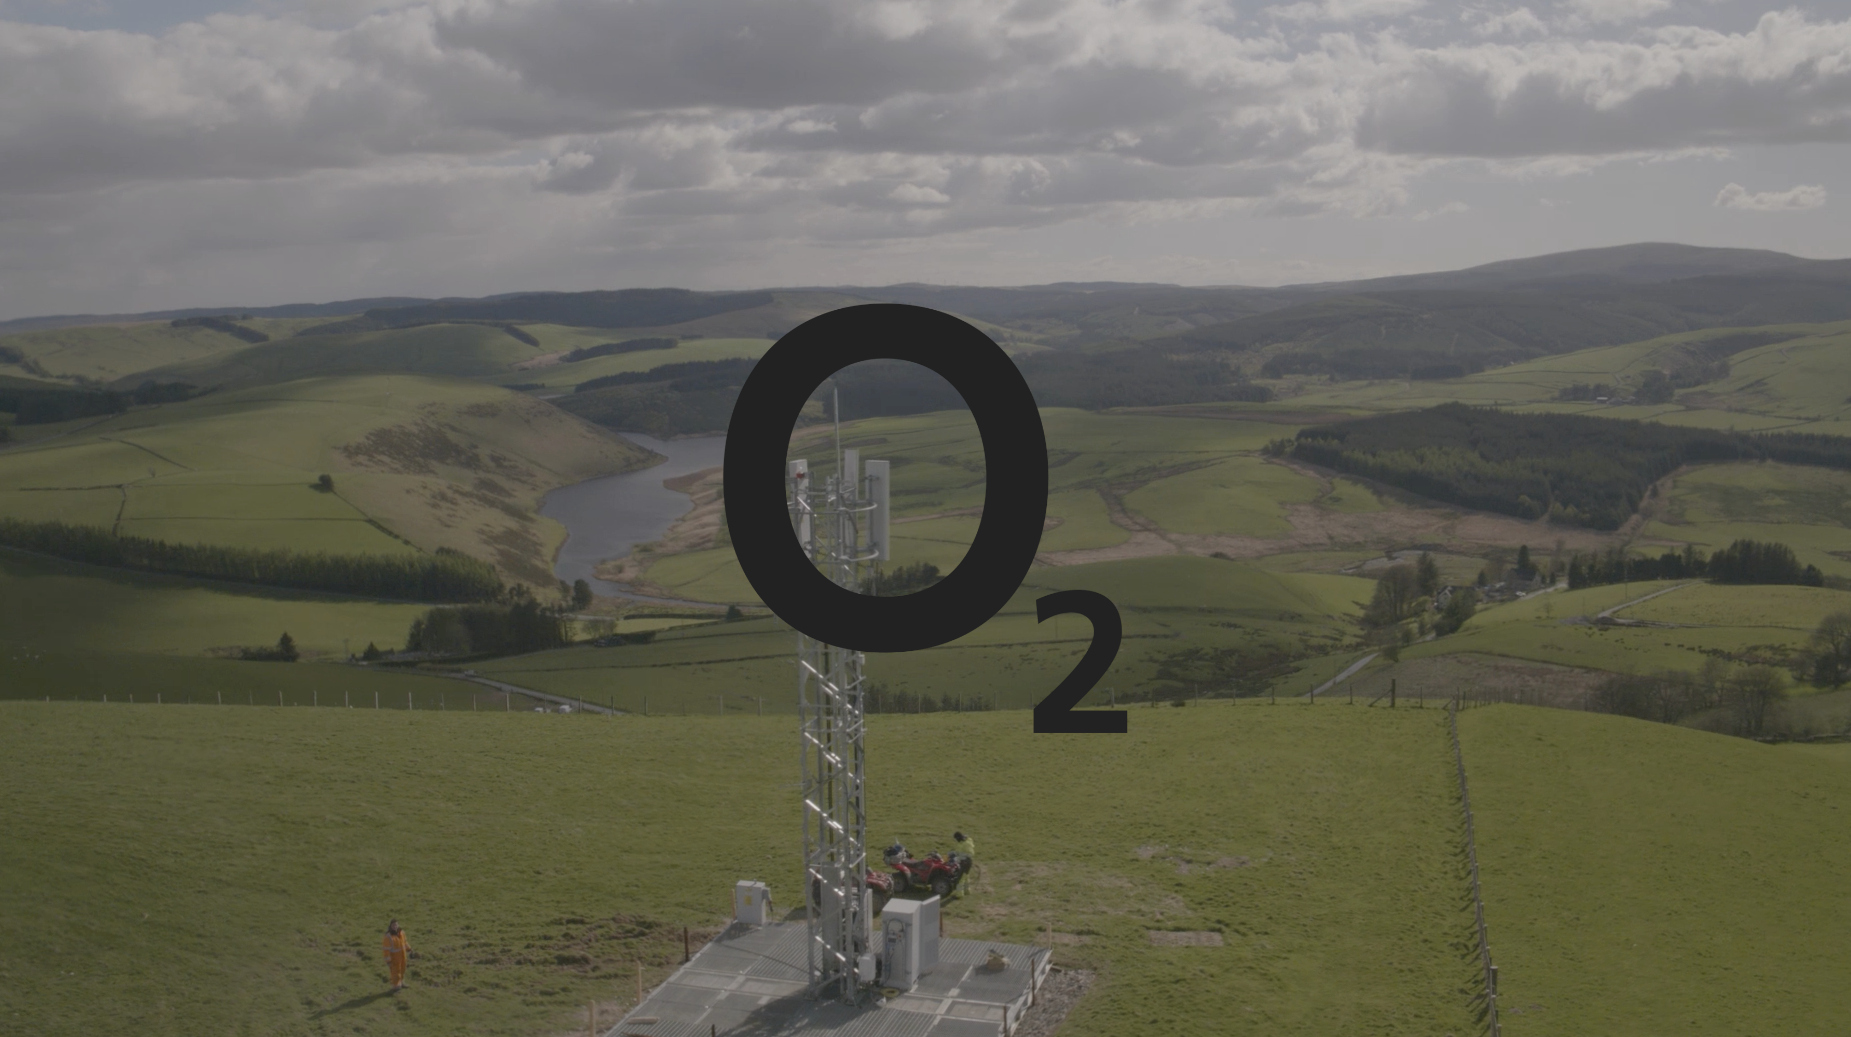 O2 bring 4G to Staylittle